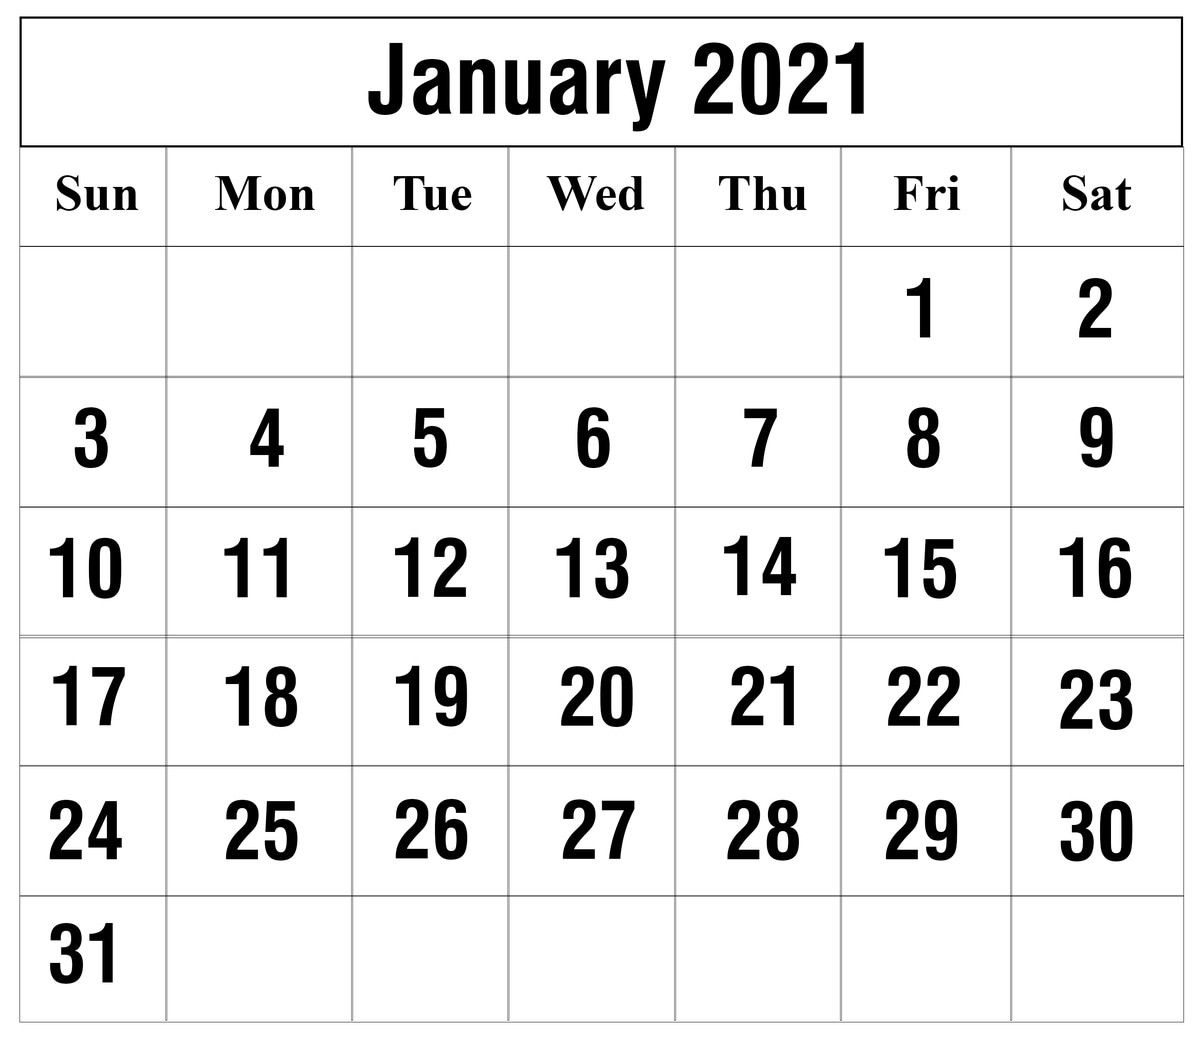 Calendar For January 2021 Project In 2020 | 2021 Calendar